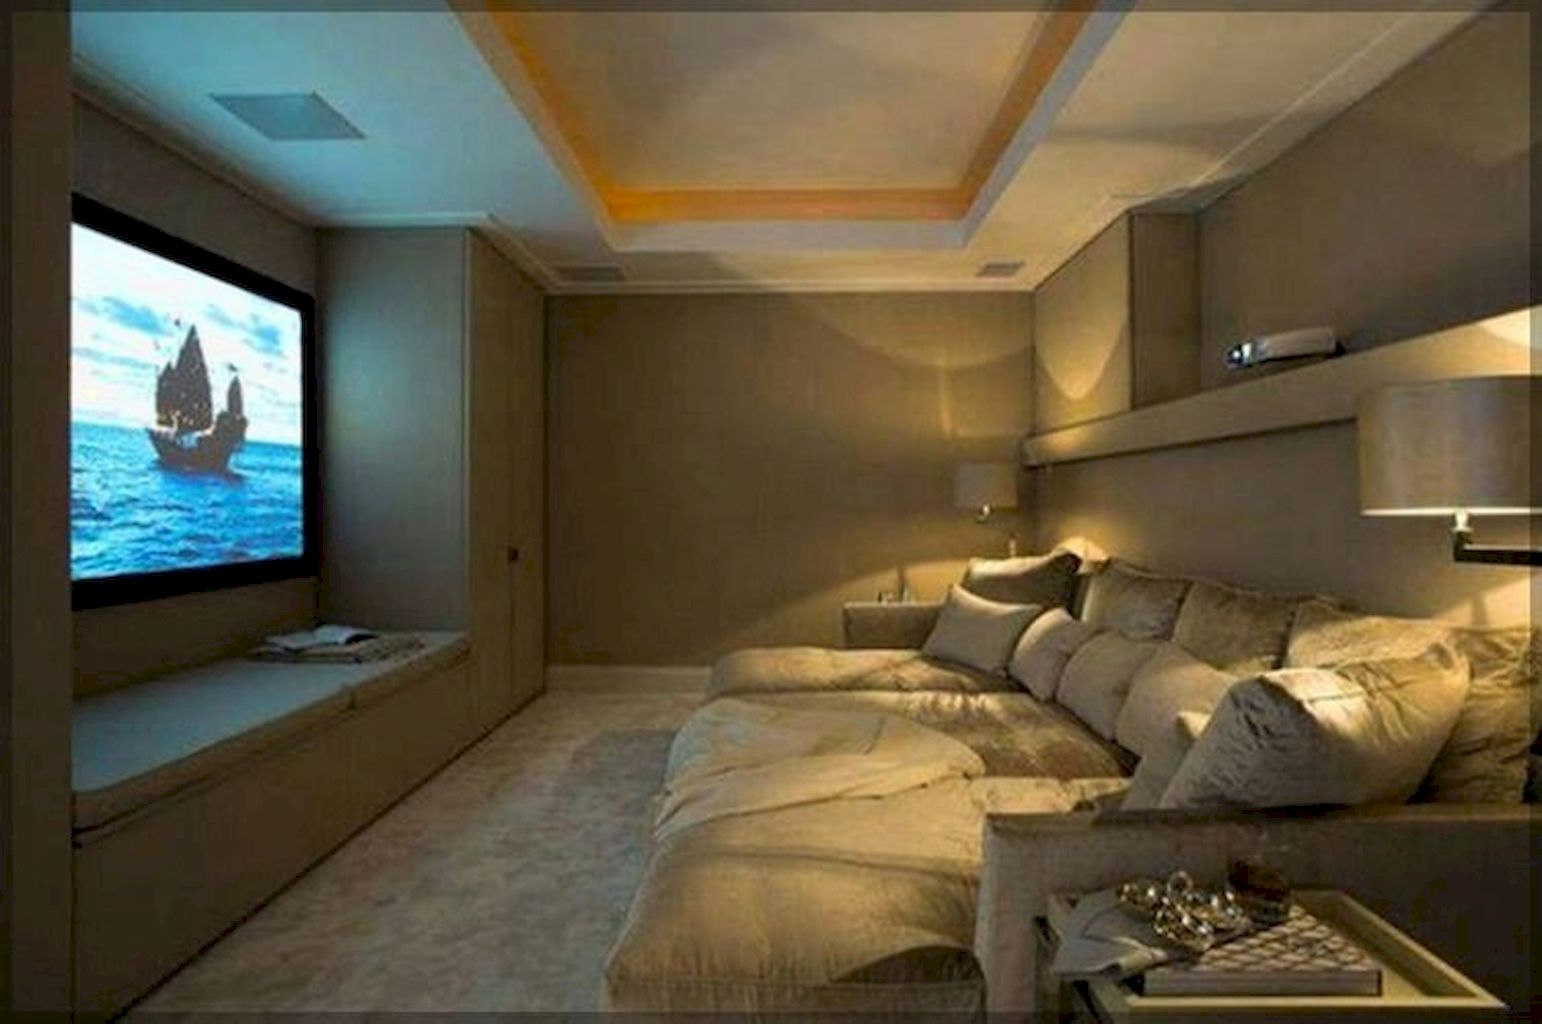 Home Cinema120